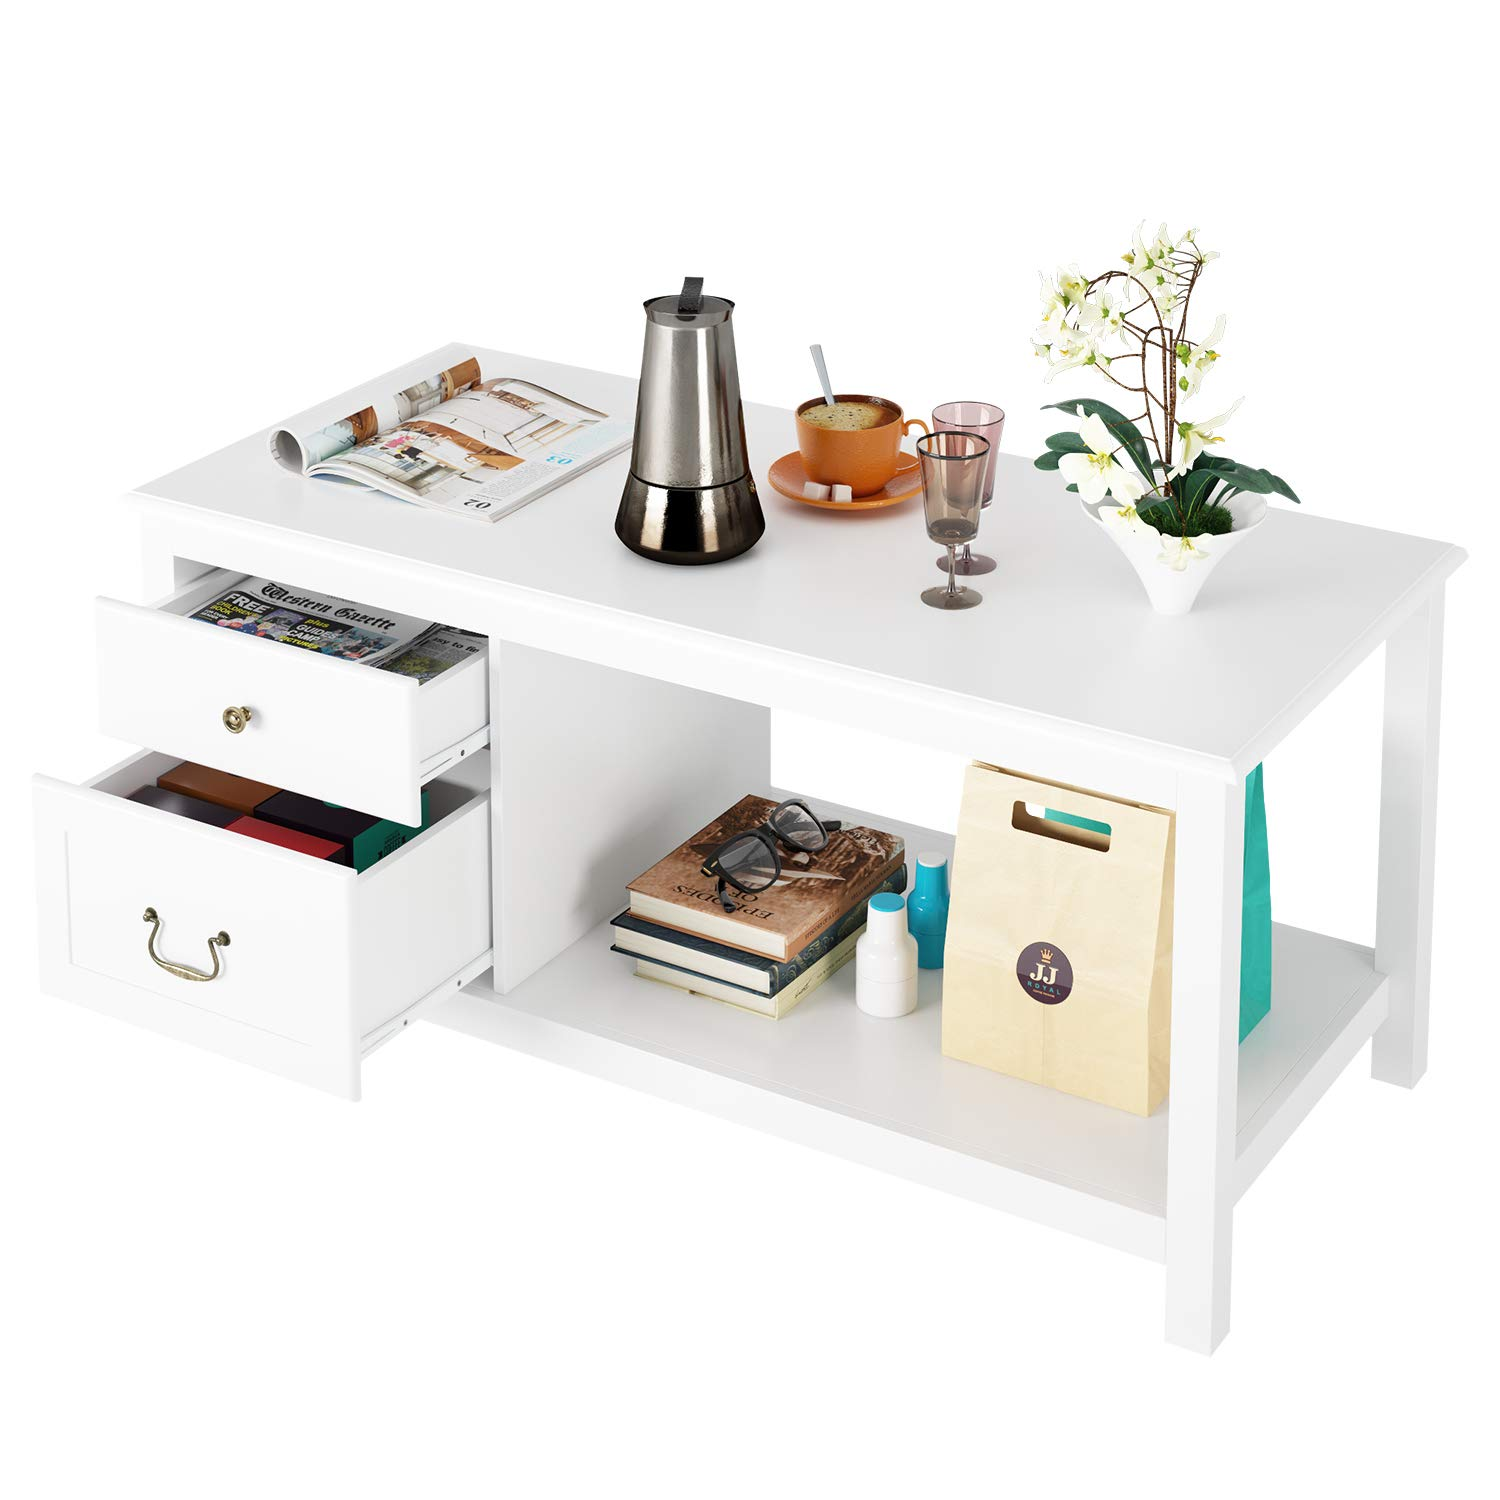 HOMECHO White Coffee Table with 2 Drawer Storage Shelf Open Shelves Large Modern Cocktail Tables for Living Room, 2-Tier Wood, HMC-MD-018 by HOMECHO